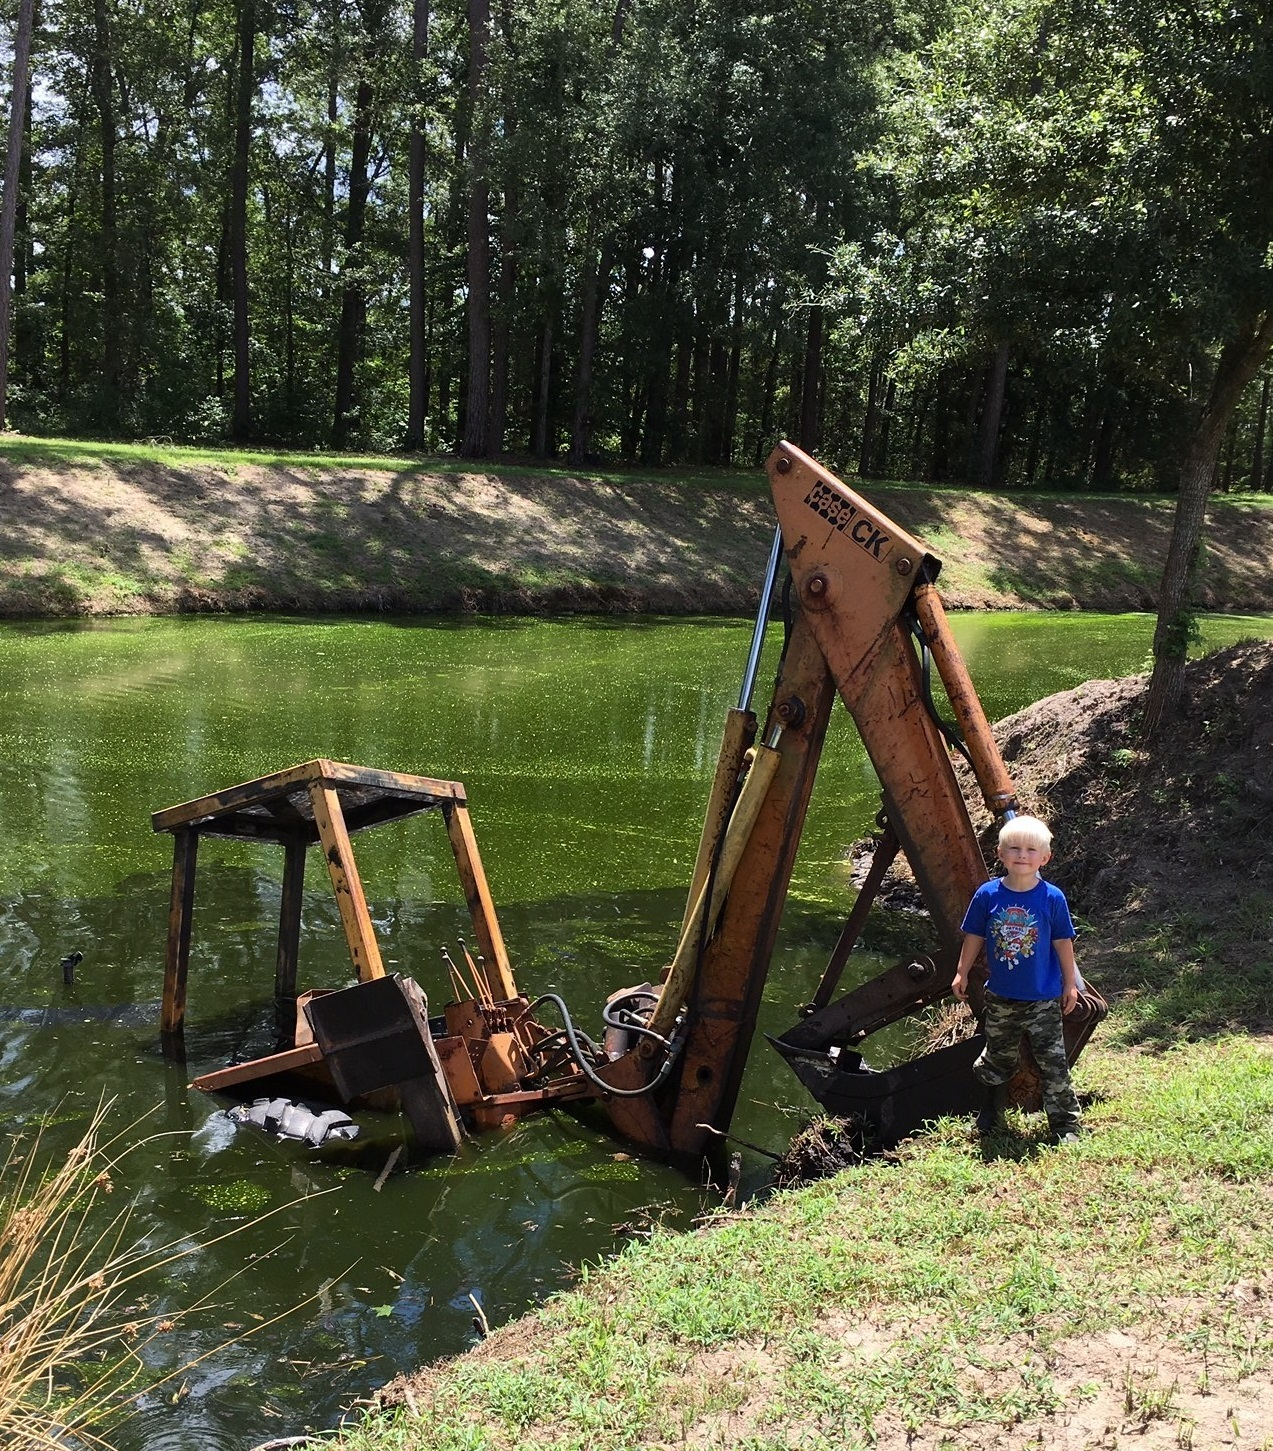 There was the day the backhoe accidentally went into the pond!